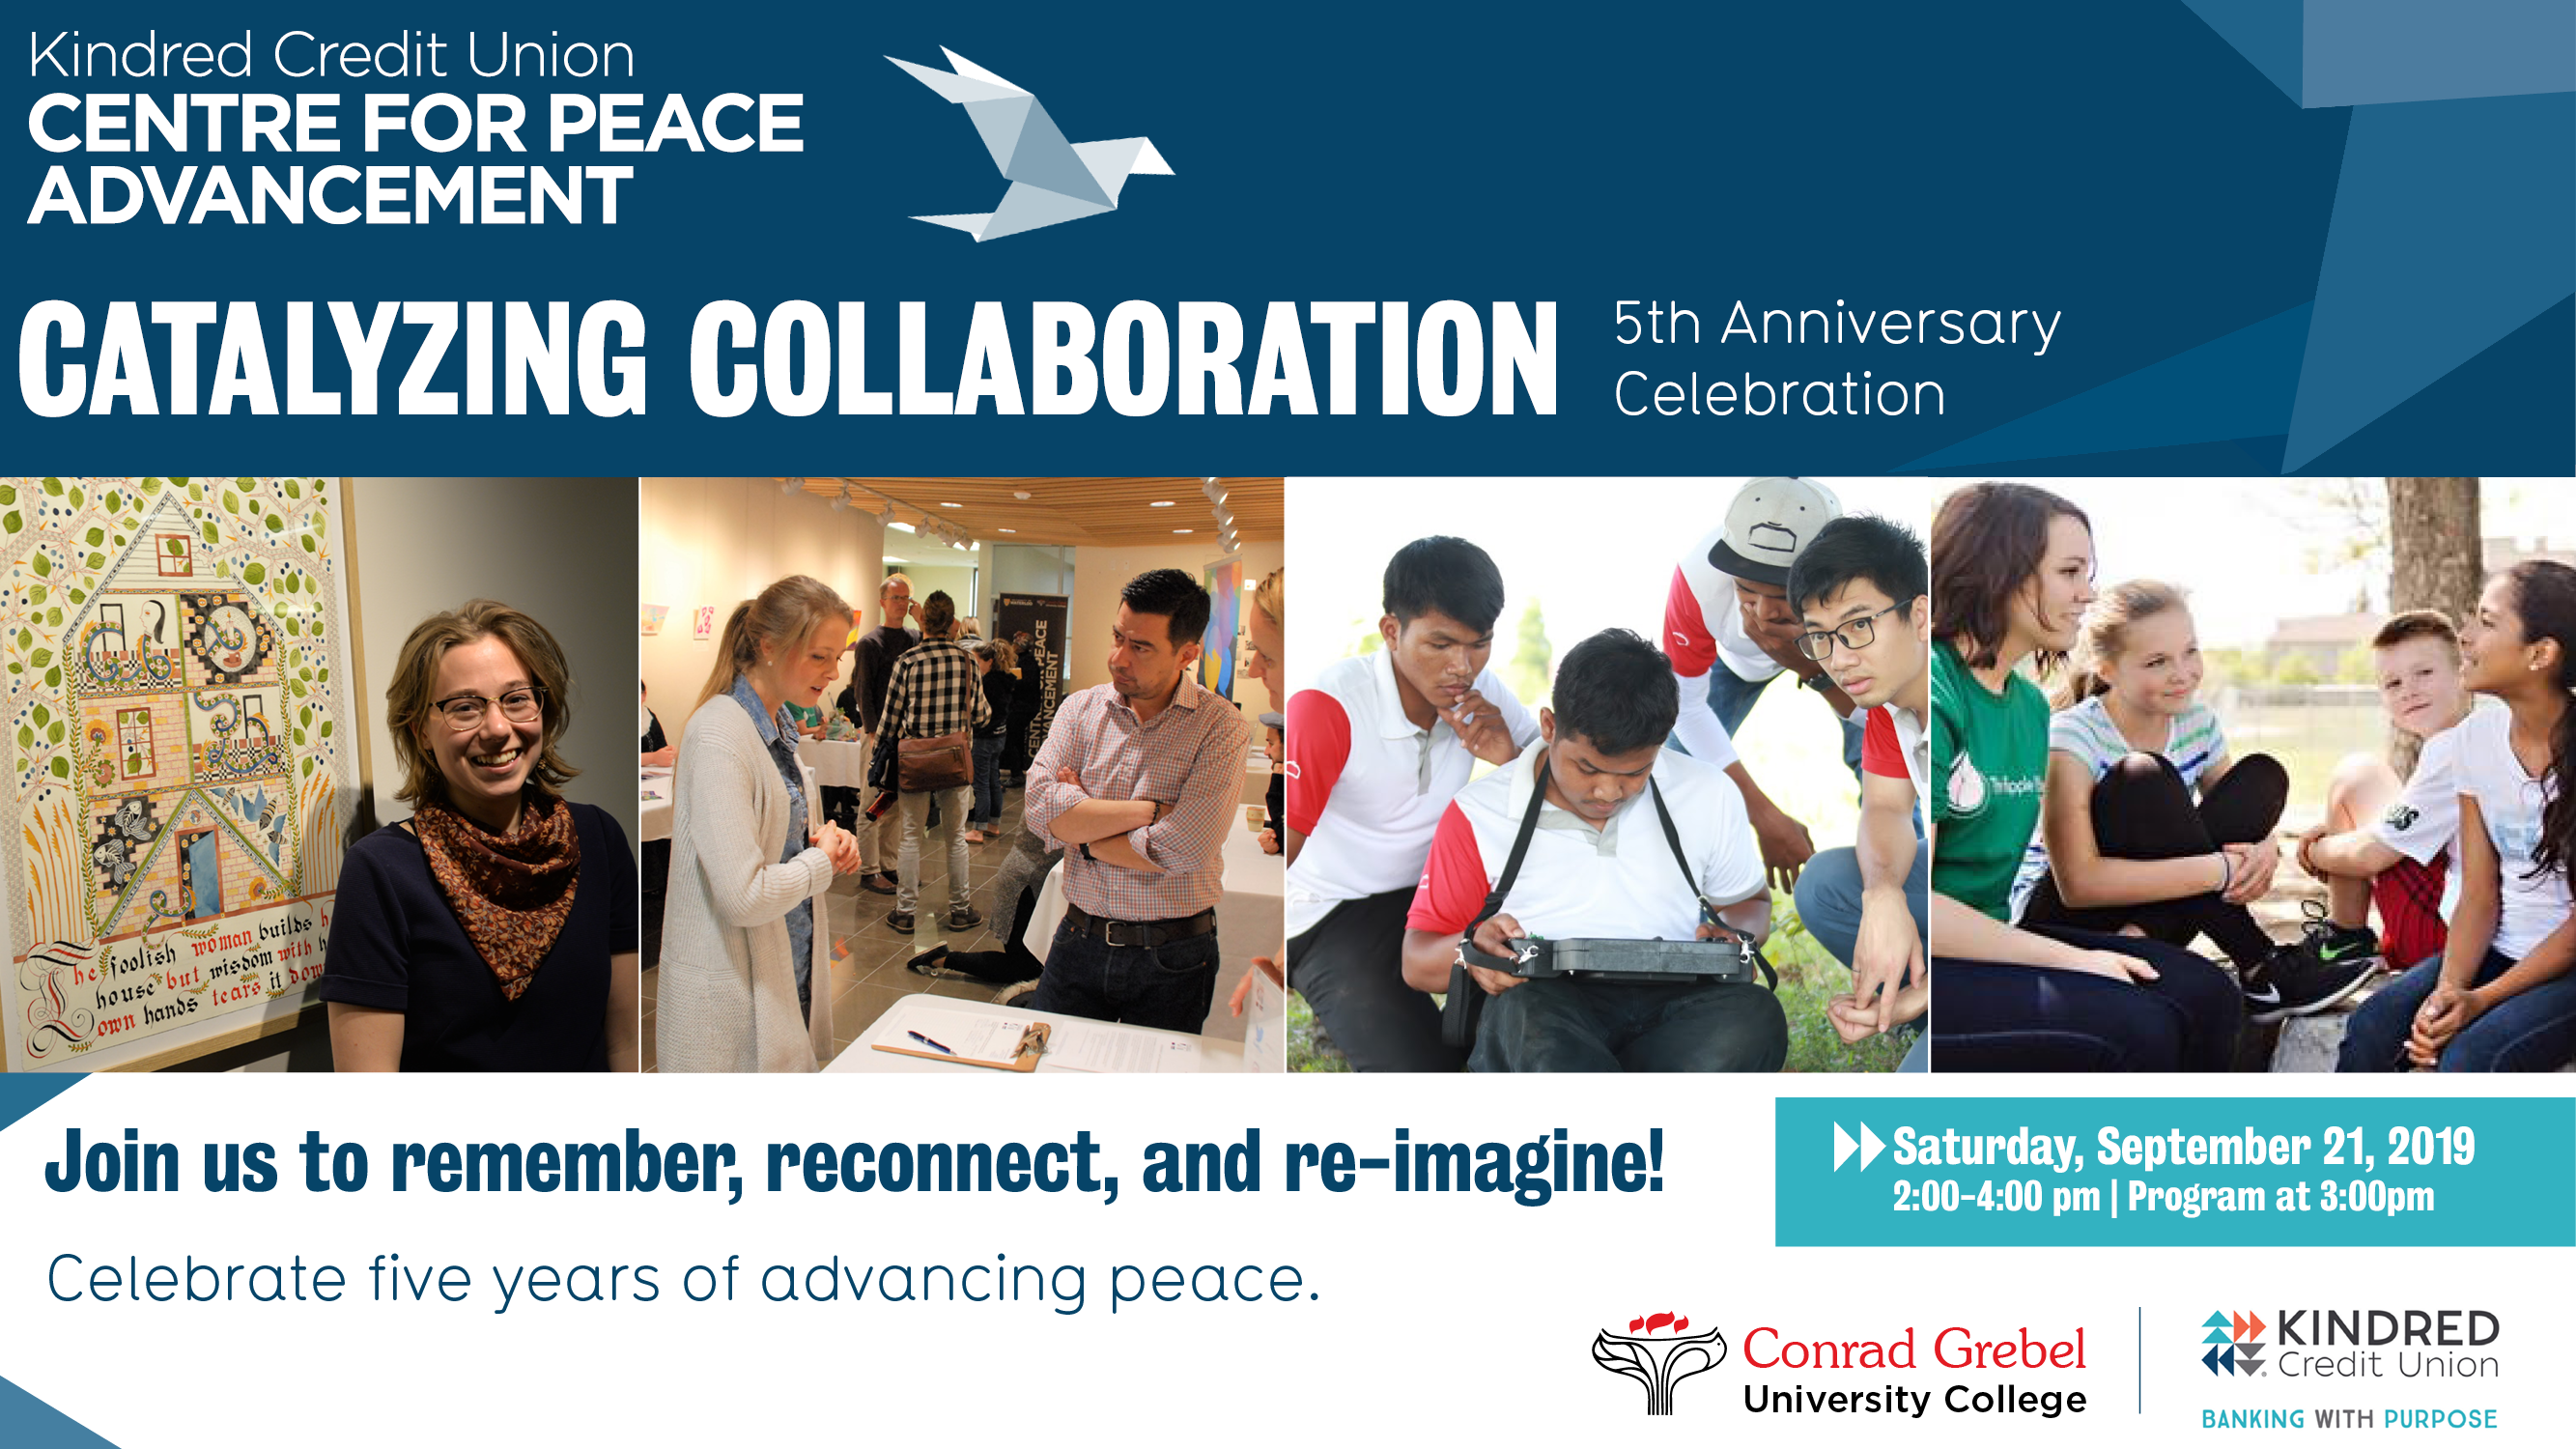 Centre for Peace Advancement Fifth Anniversary